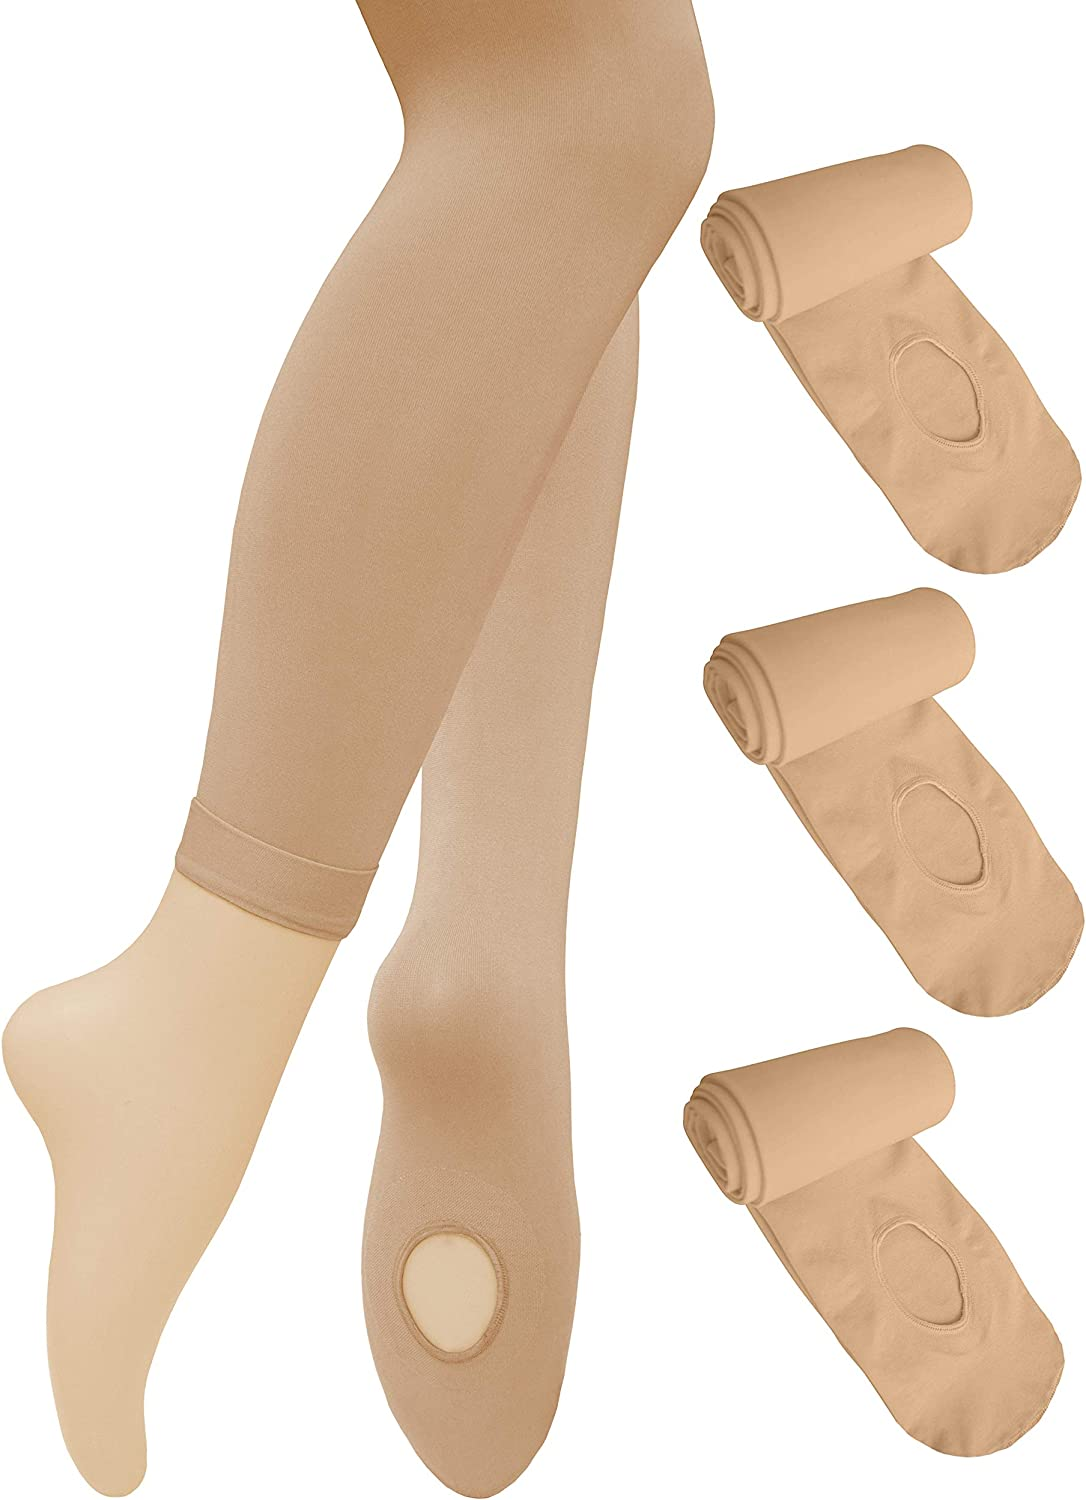 Dancina Dance Ballet Tights for Girls & Women - Ultra-Soft Convertible Transition Tights at  Women's Clothing store